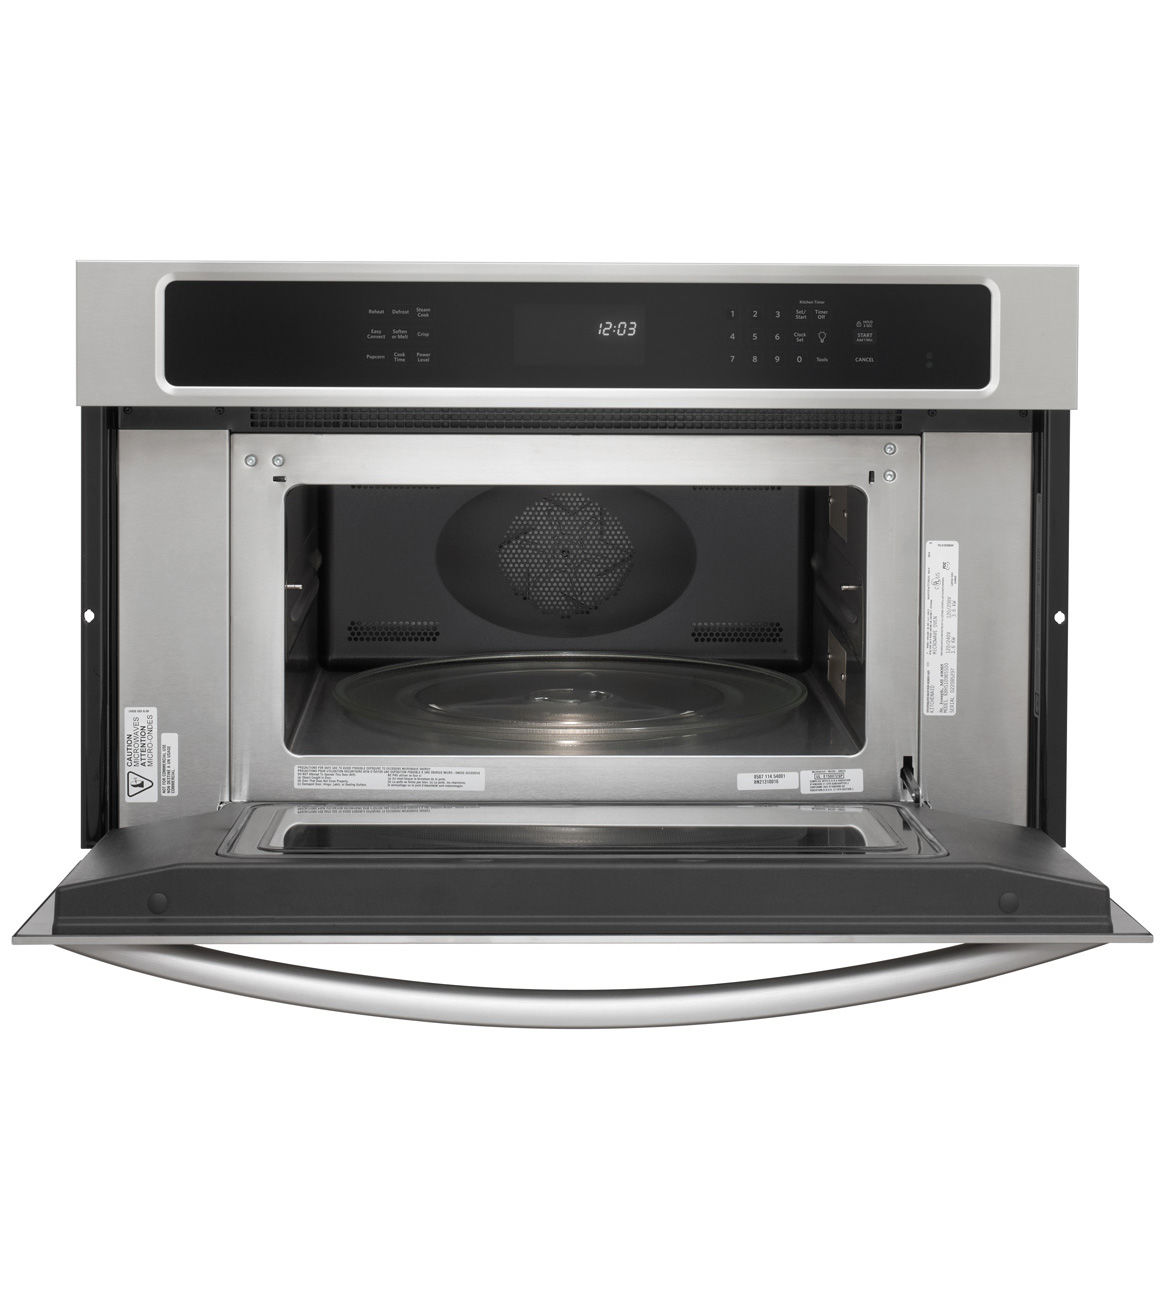 ... Electric Oven / Microwave / Convection / Built In KBHS109BSS KitchenAid  ...